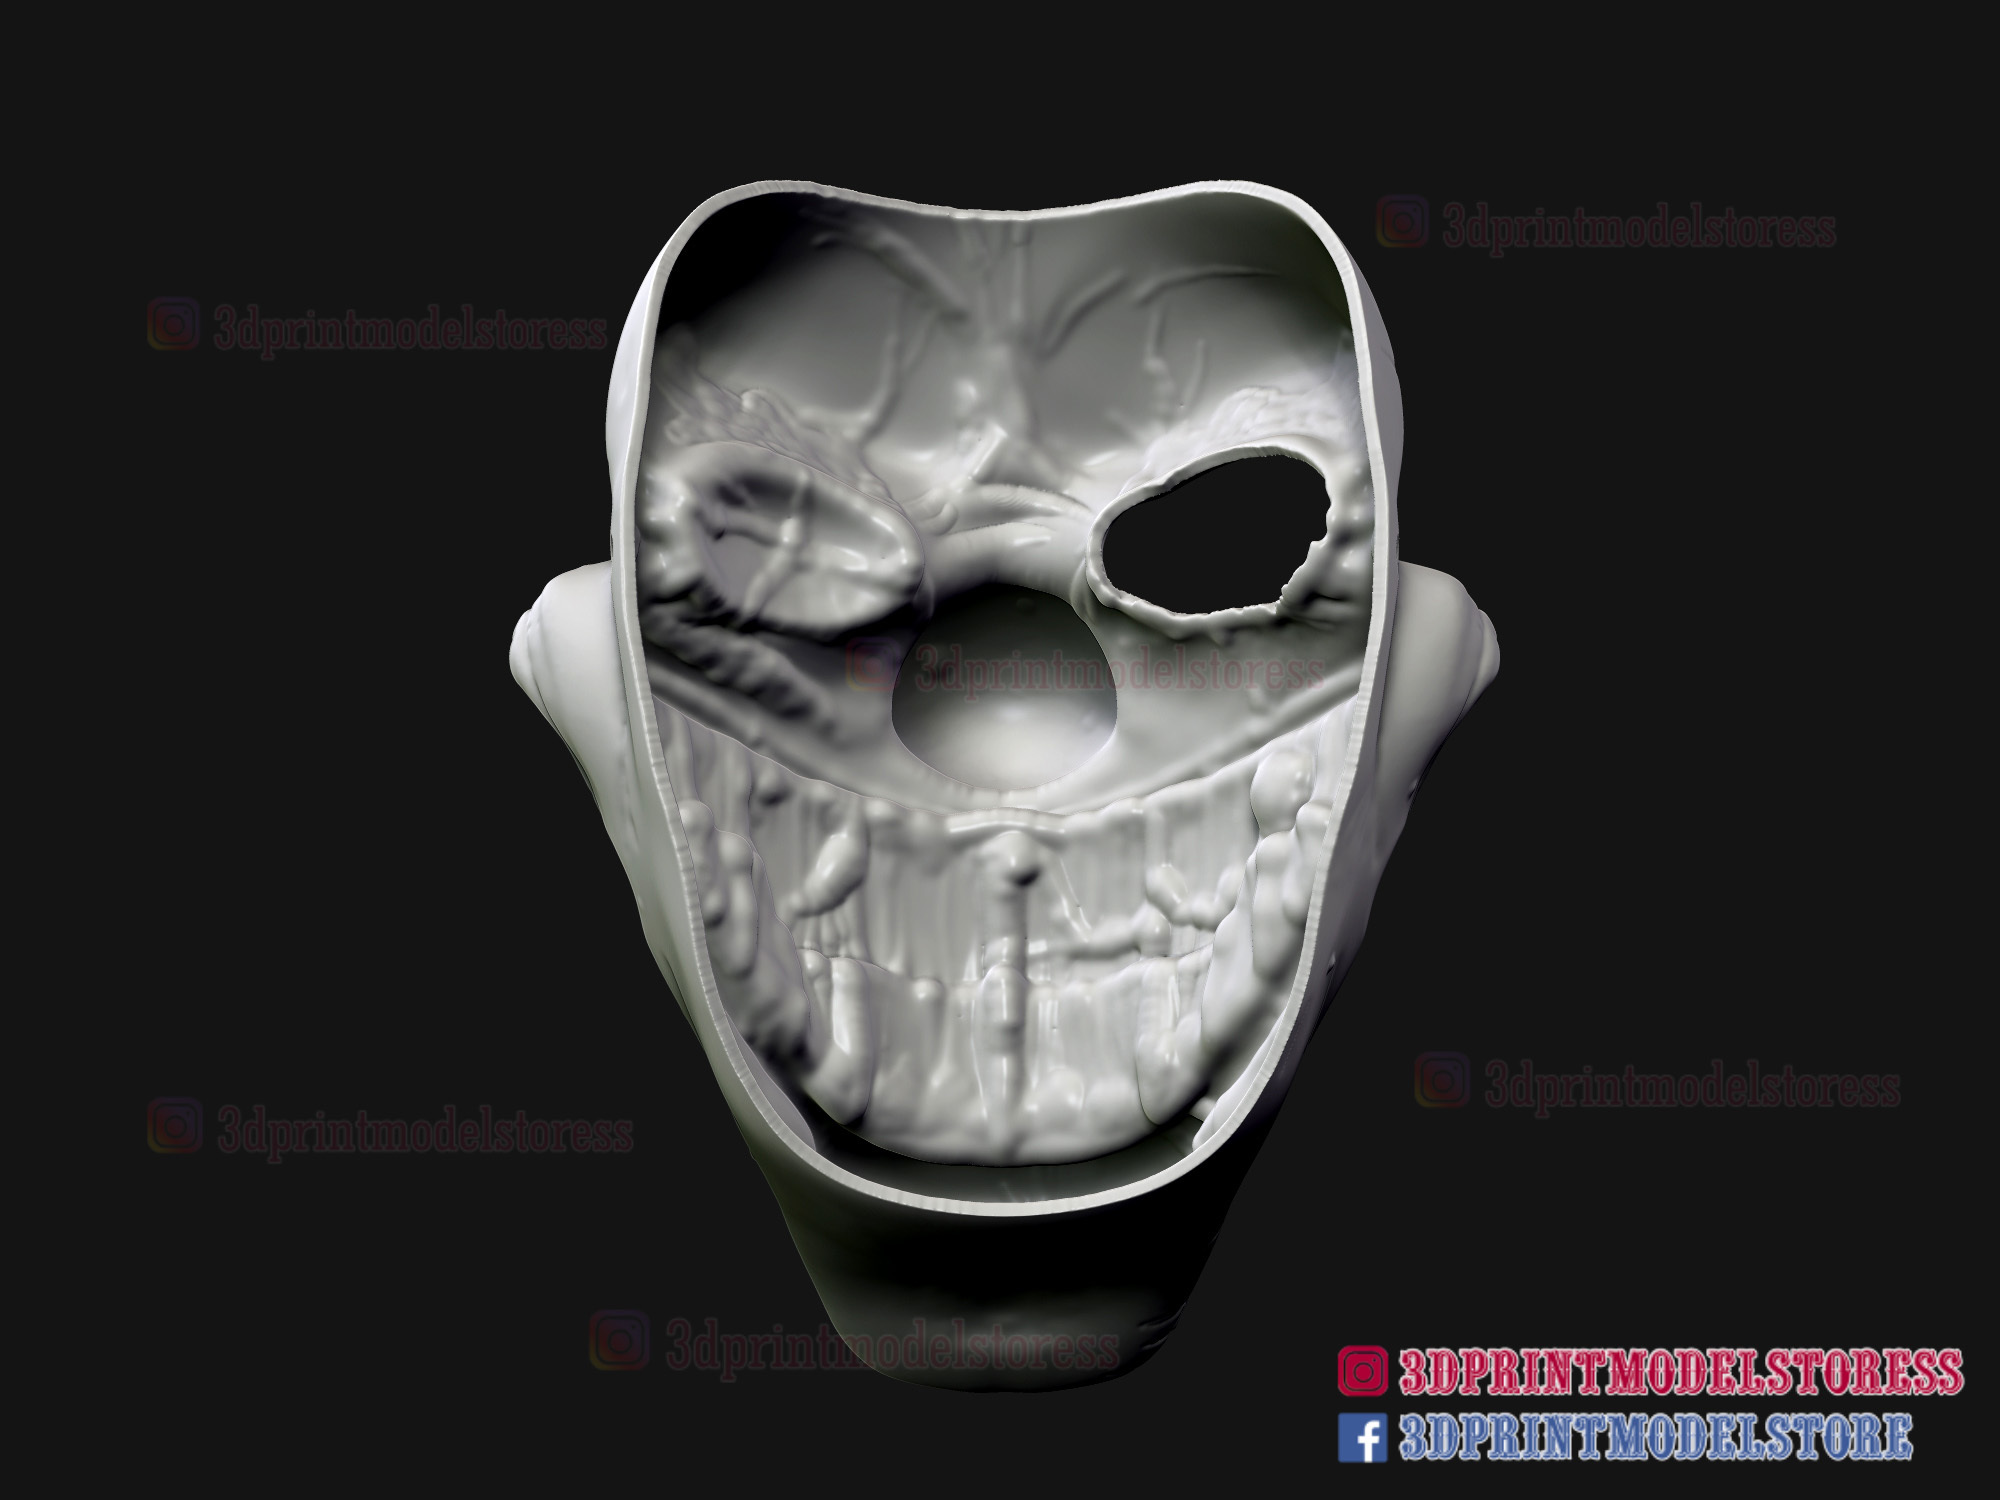 Twisted_metal_killer_clown-11.jpg Download STL file Twisted Metal Killer Clown Mask  • 3D printer model, 3DPrintModelStoreSS